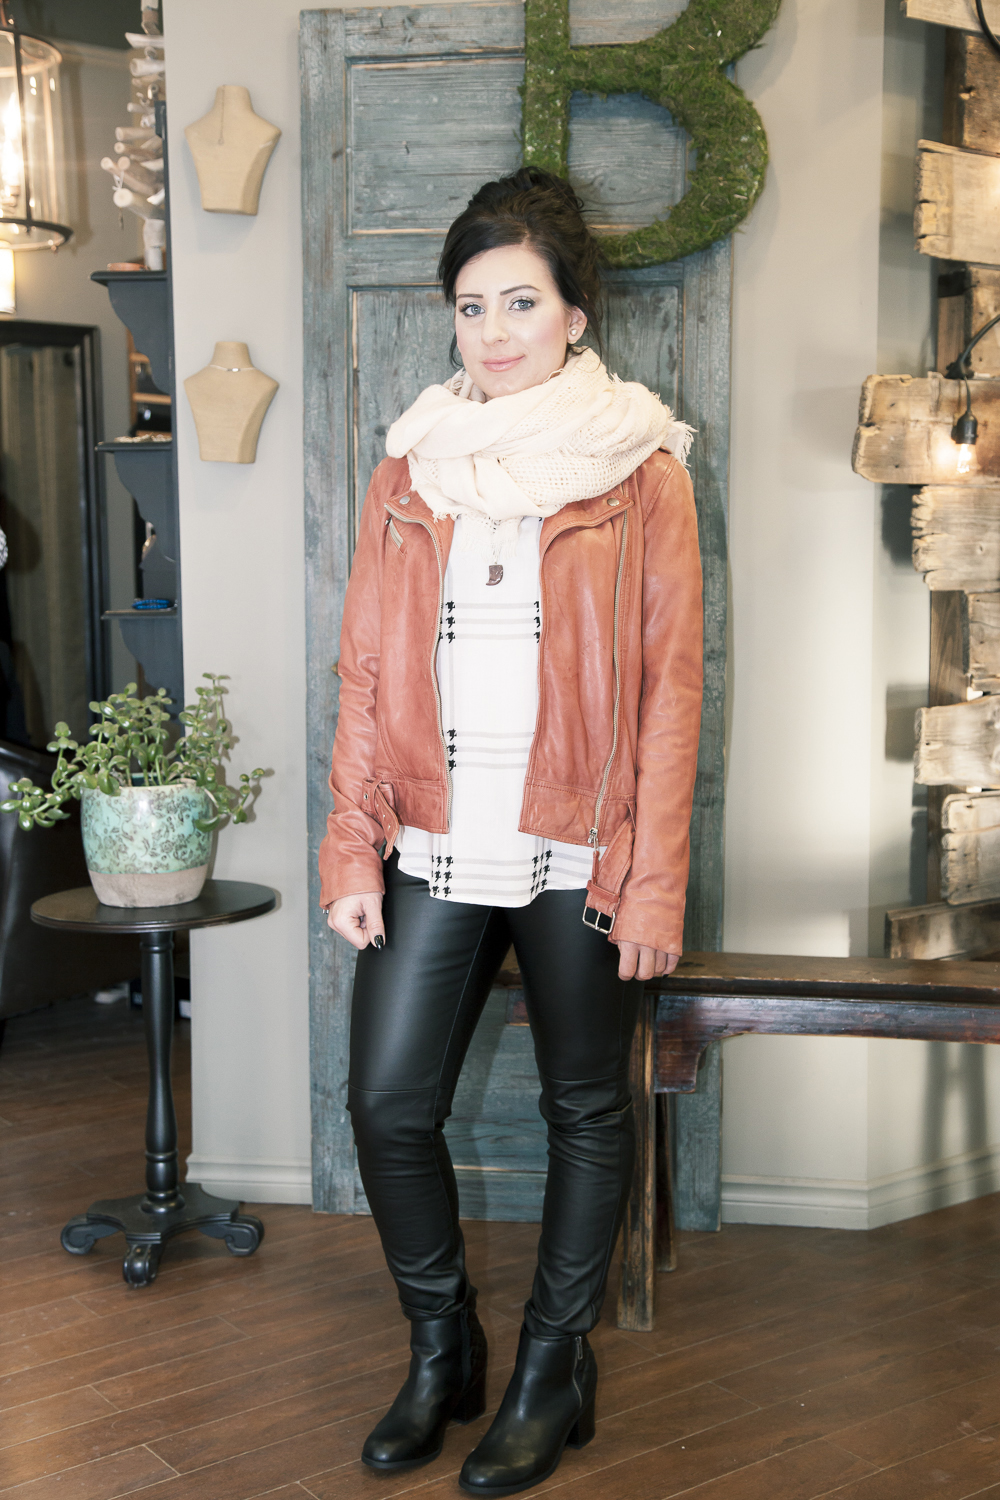 Bella-maas-boutique-spring-coats-leather-jacket-edmonton-sherwood-park-st-albert-soia-kyo-shop-local-colour